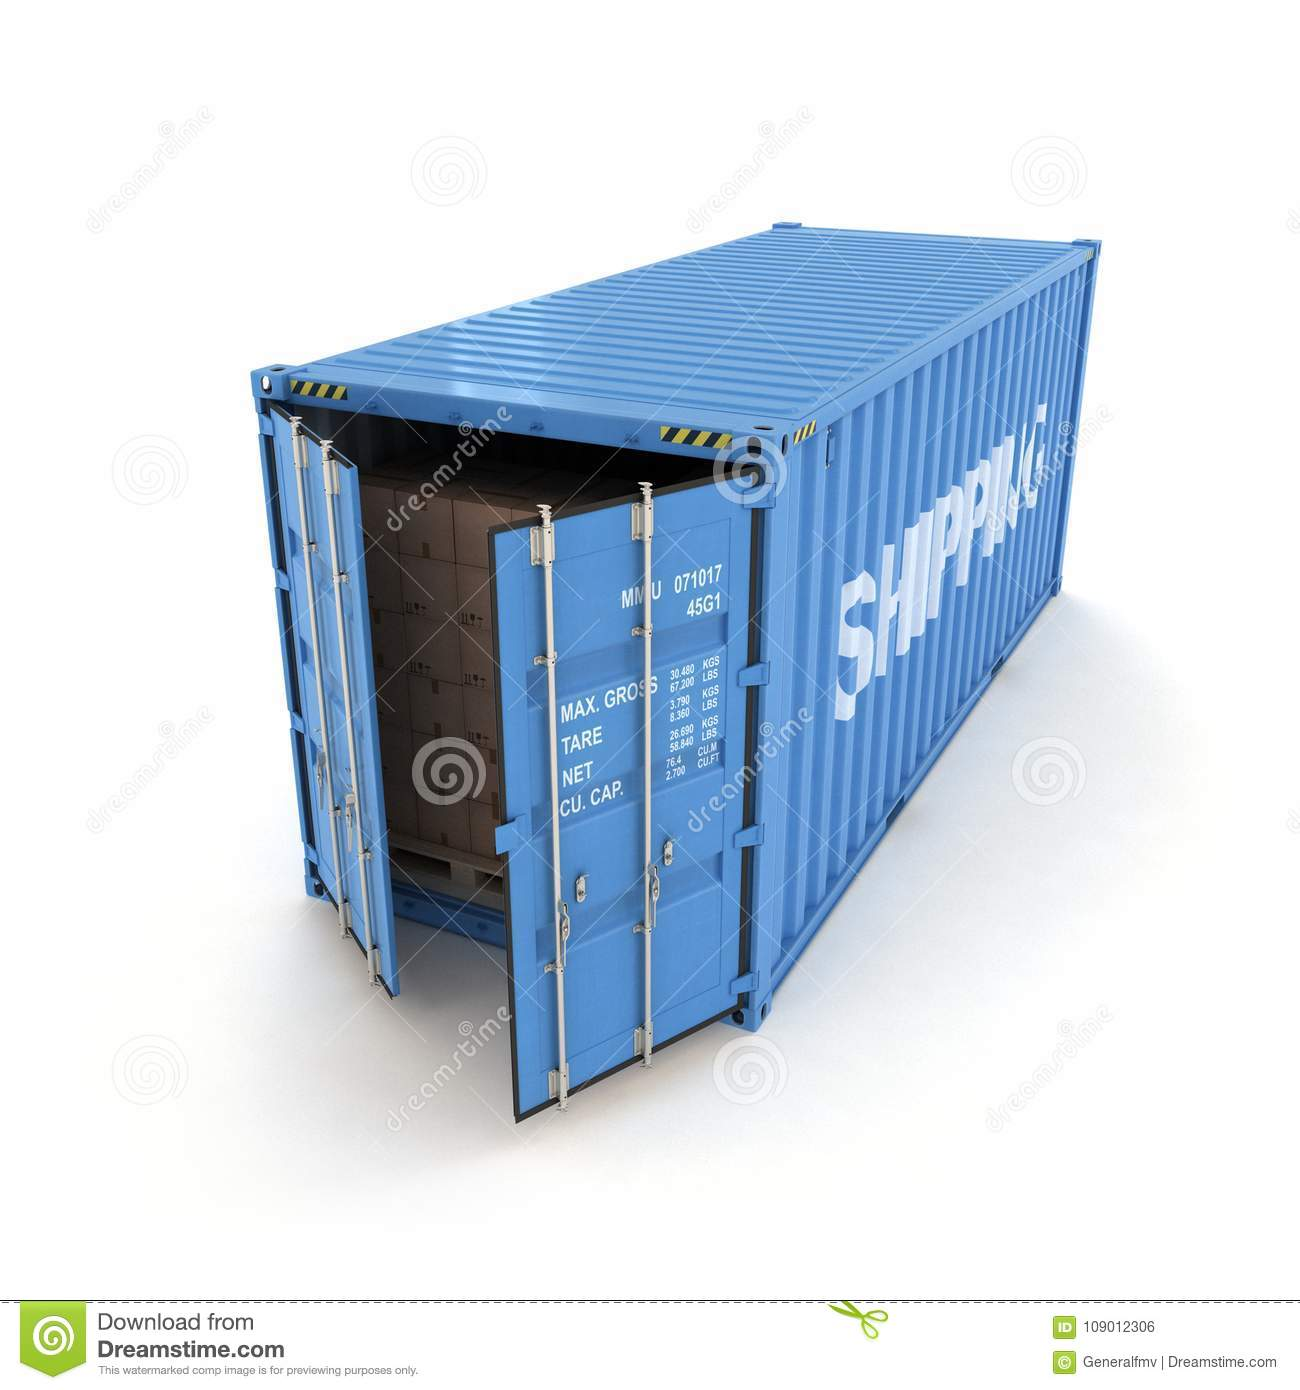 How to open shipping 6